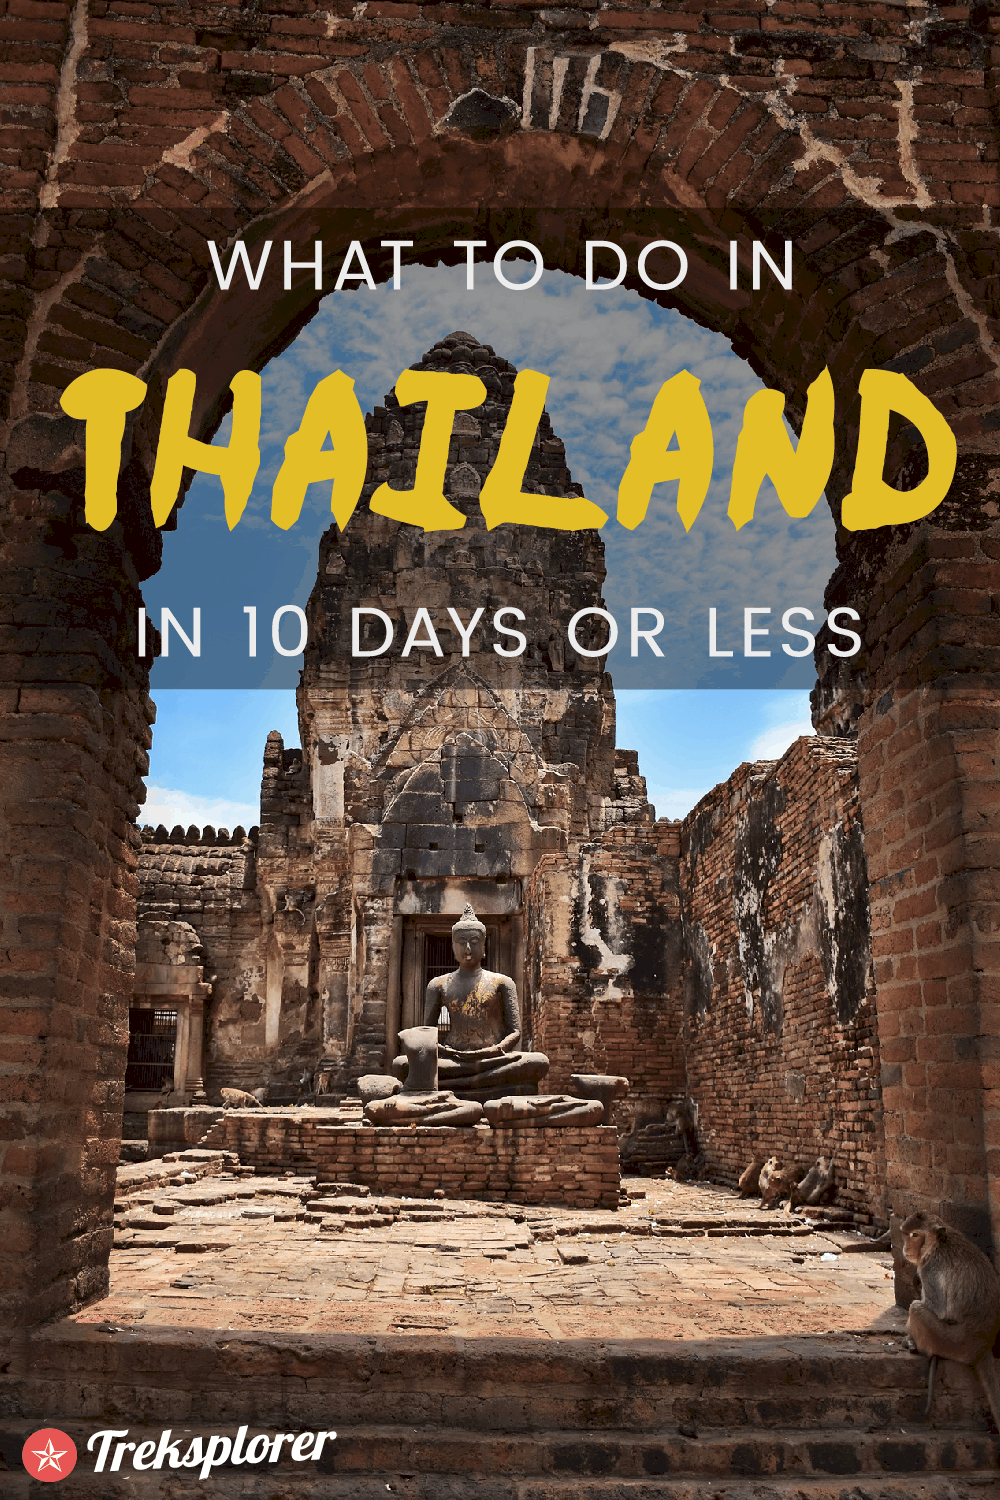 Need some ideas for what to do in Thailand? Plan out your trip with this complete 10-day Thailand itinerary including suggestions on where to go, things to do, what to eat & where to stay #thailand #southeastasia #travel